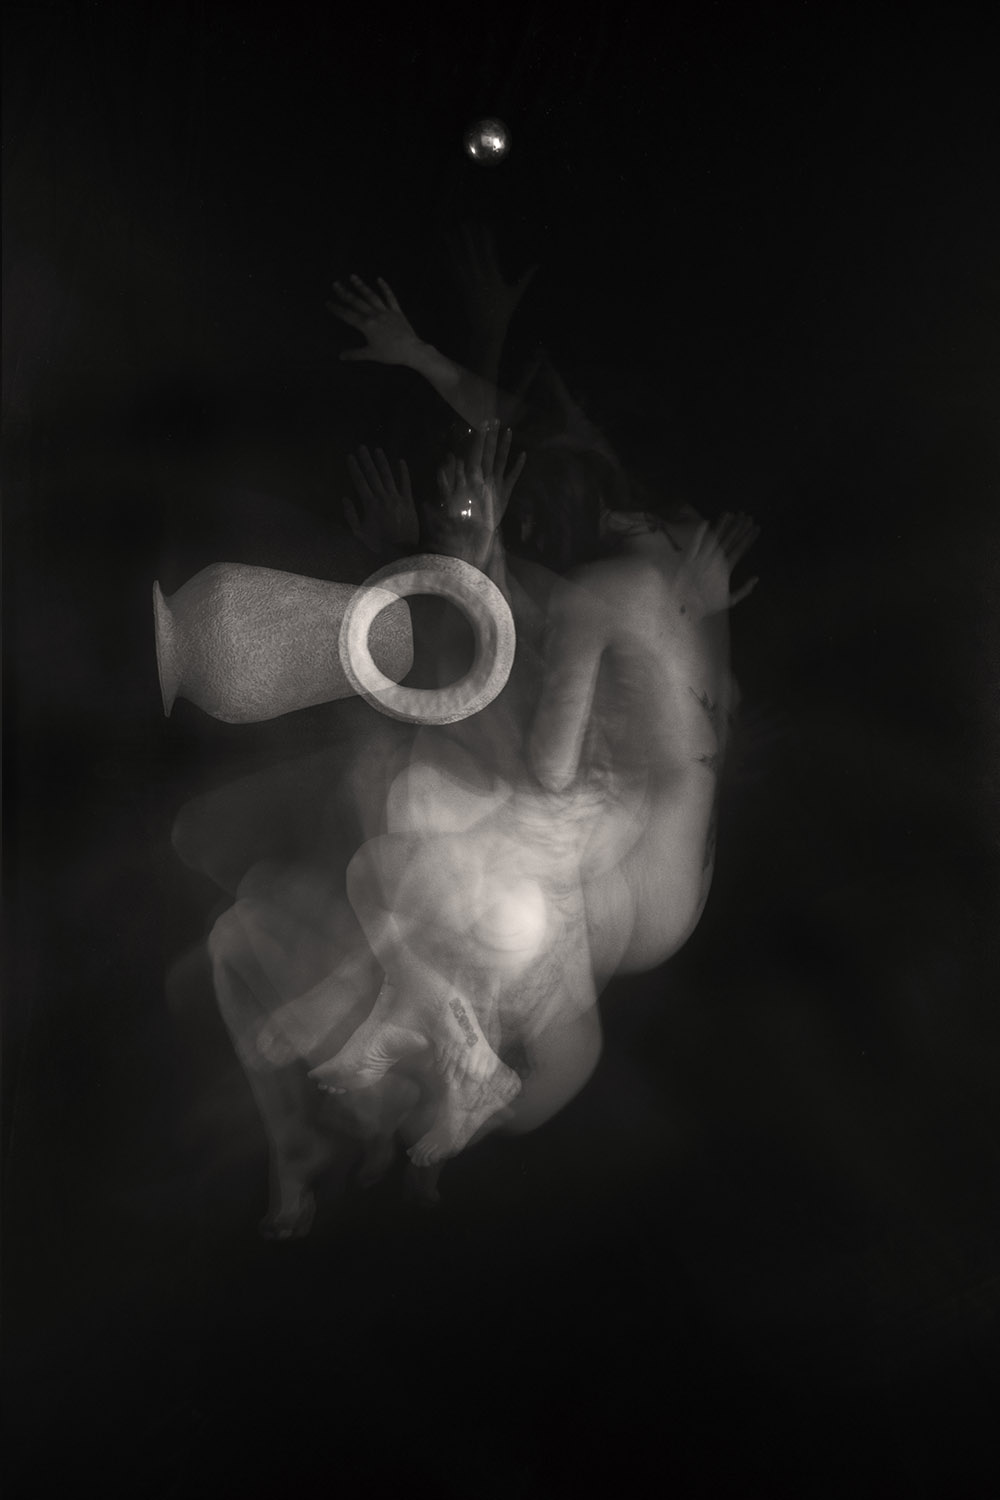 Carla Janse van Rensburg Untitled (10 minute exposure of Collective Pain Vase Consecration Ritual 2) 2018 digital photograph archival ink on Hahnemuhle, 1of20 35.5 x 24.2 cm